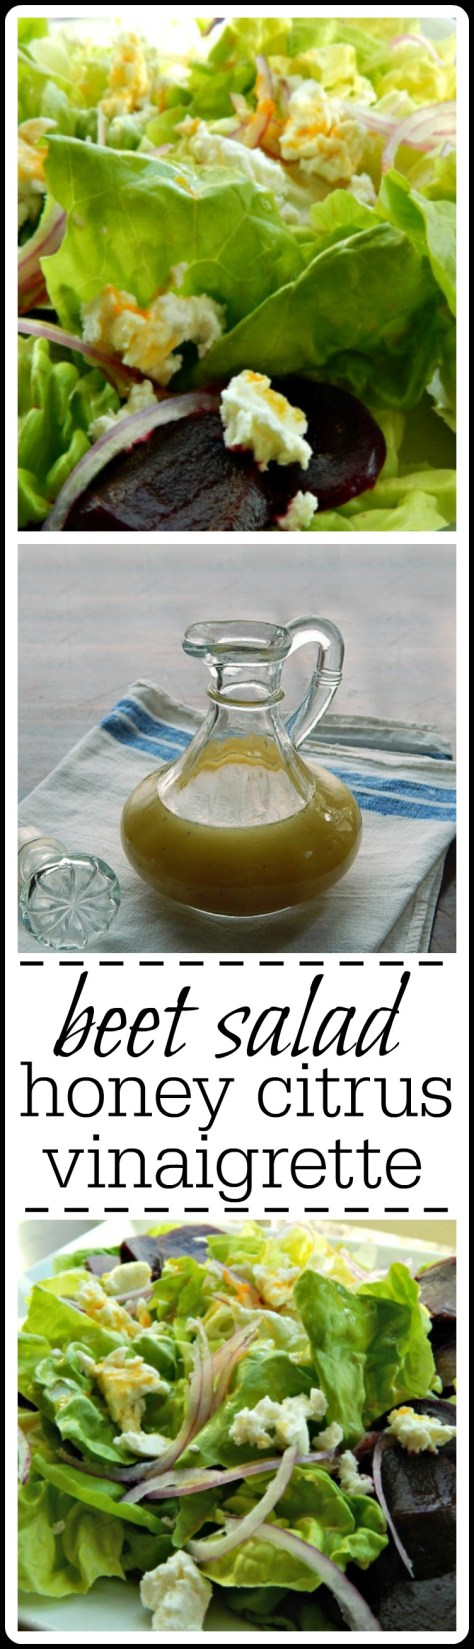 The Vinaigrette is so good you'll want to drink it!!